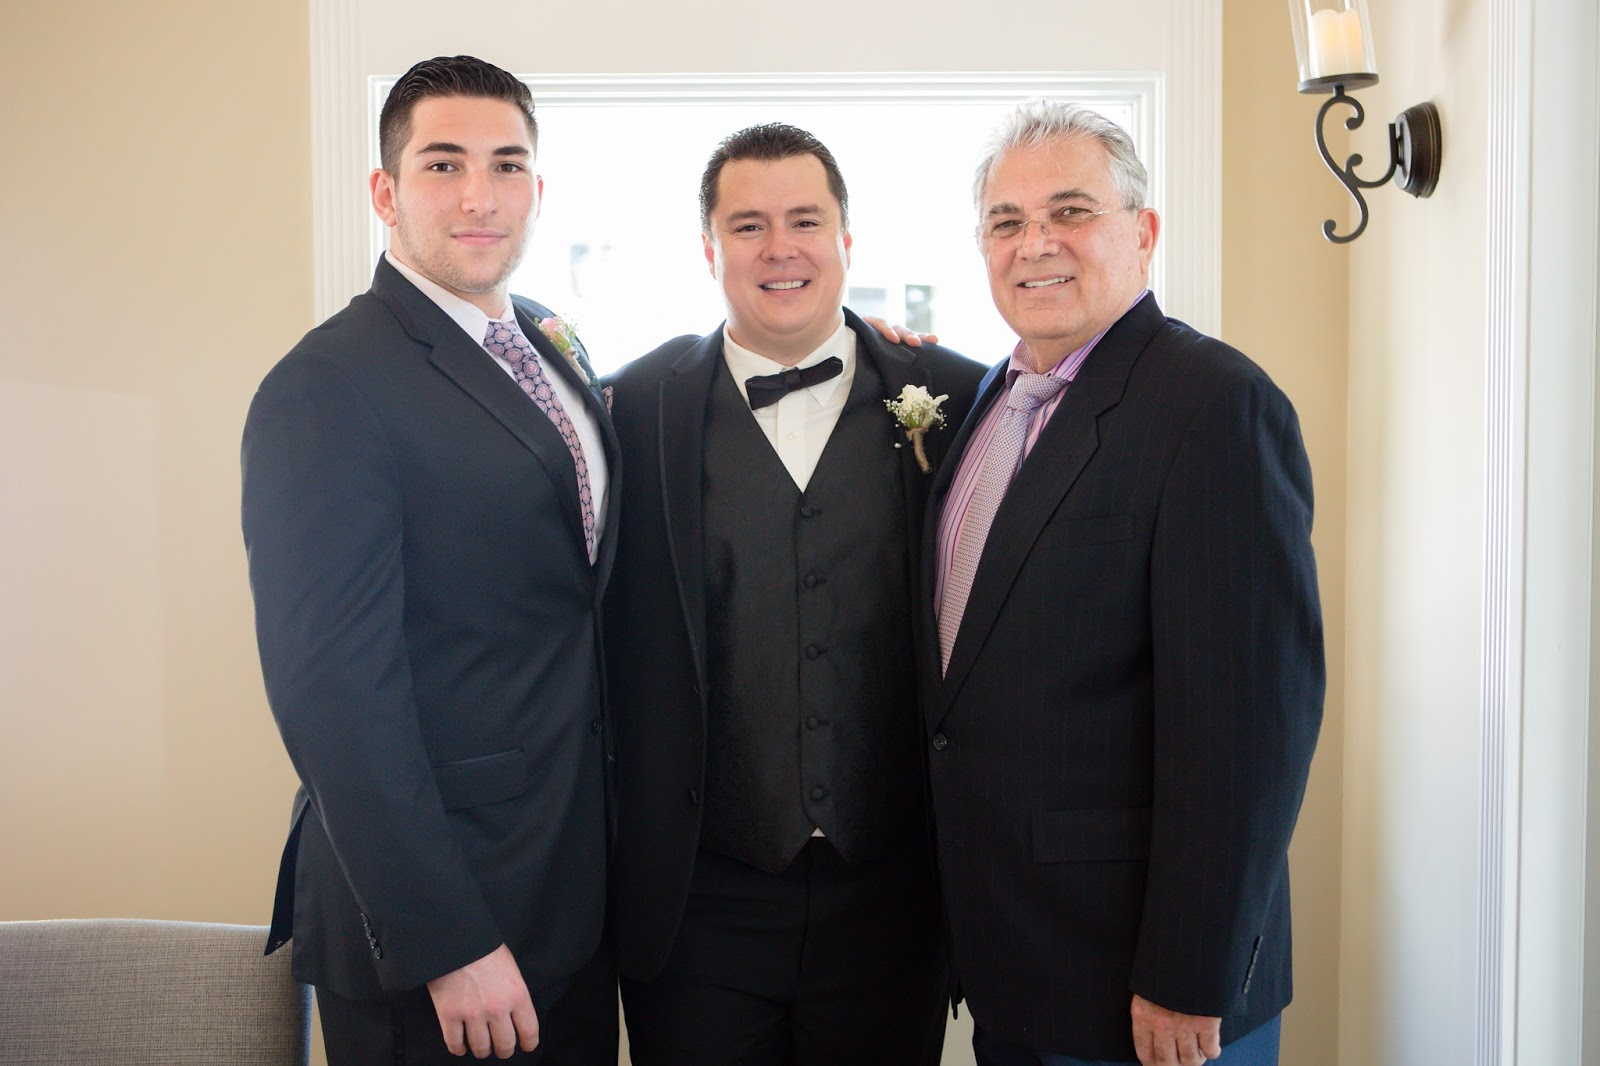 Groom brother and dad